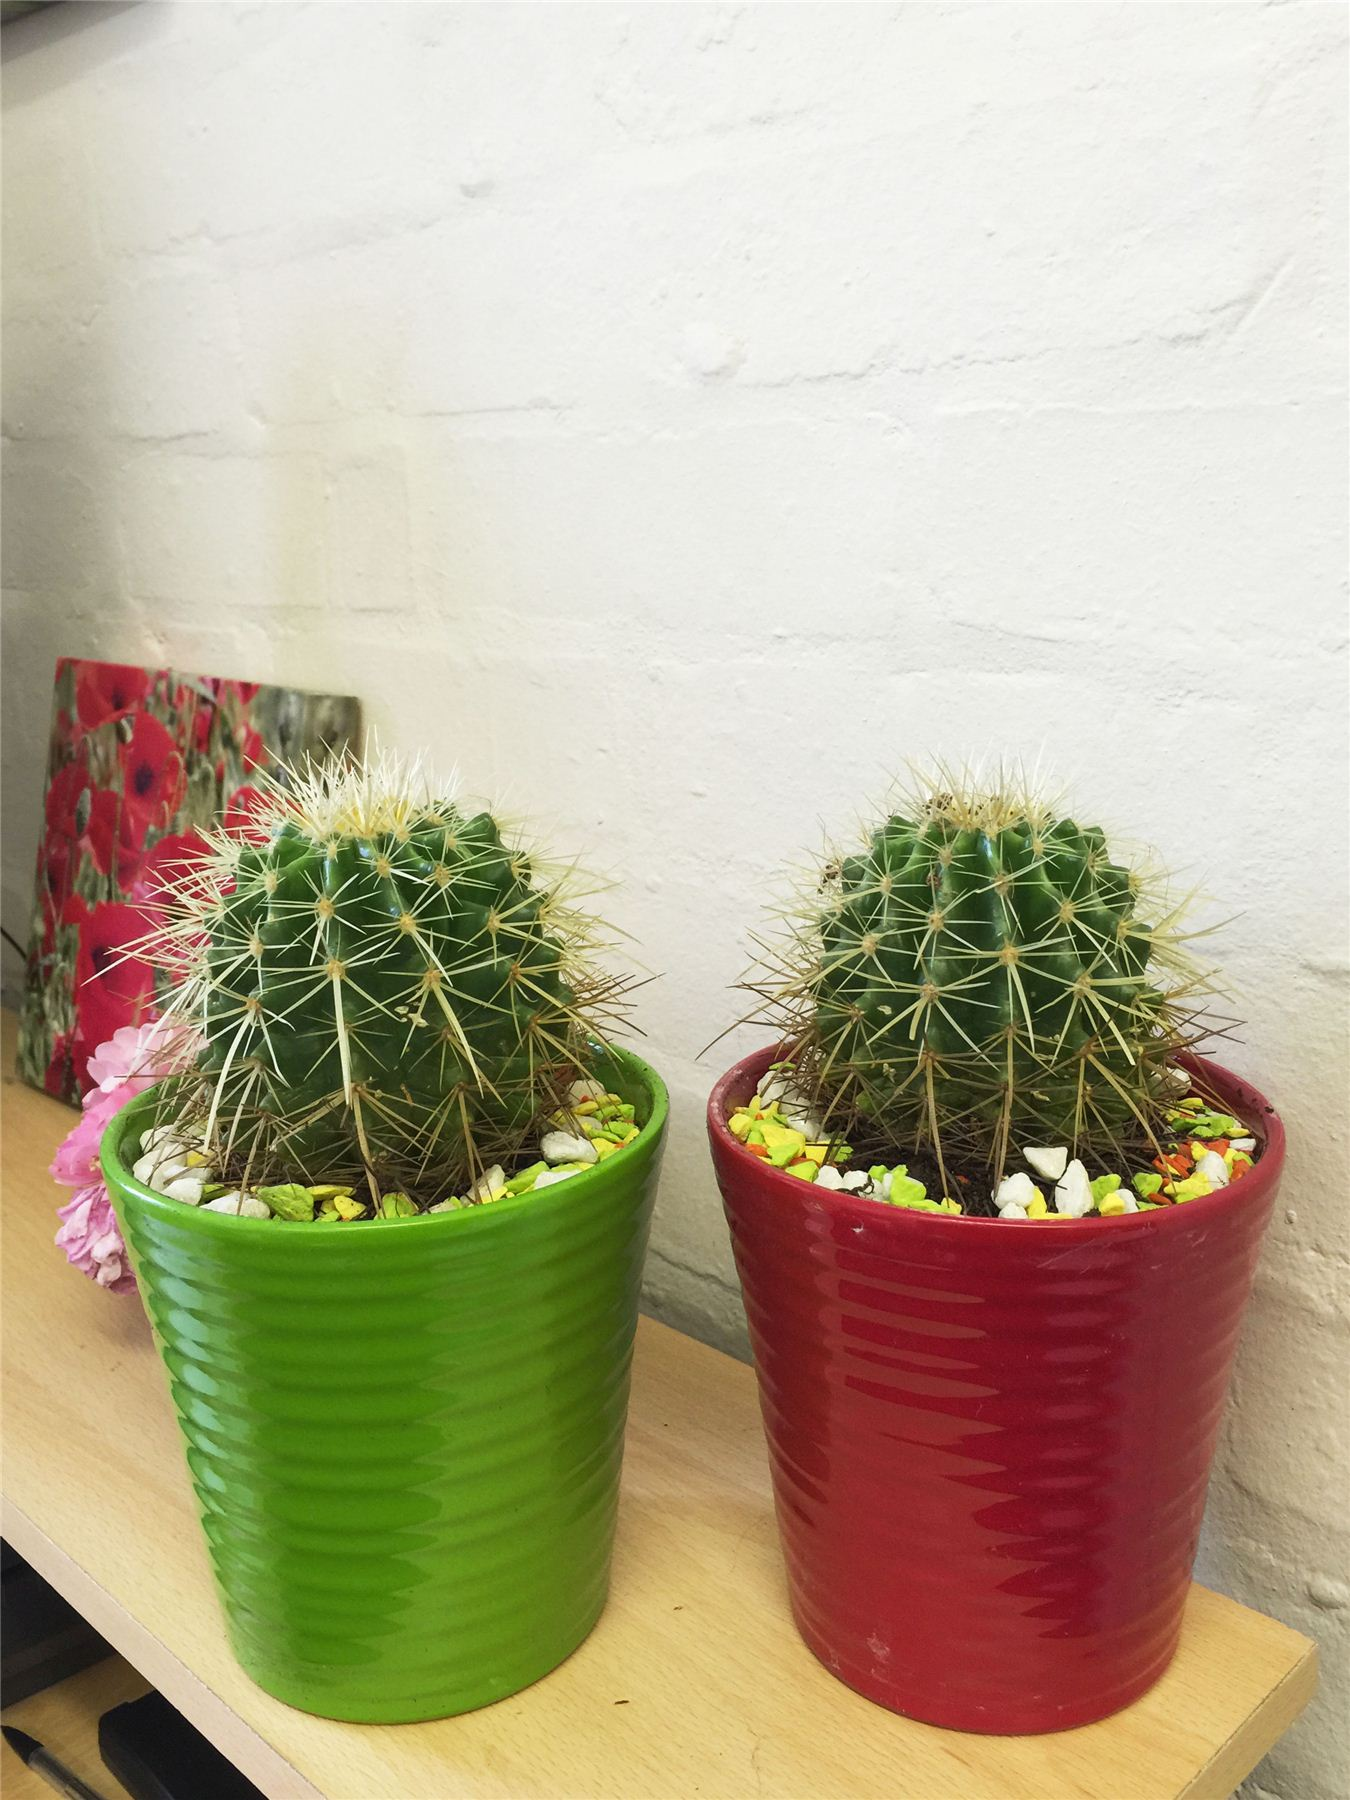 Ceramic Pots For Plants Indoor 1 Large Cactus Evergreen Indoor Office Plant In Ceramic